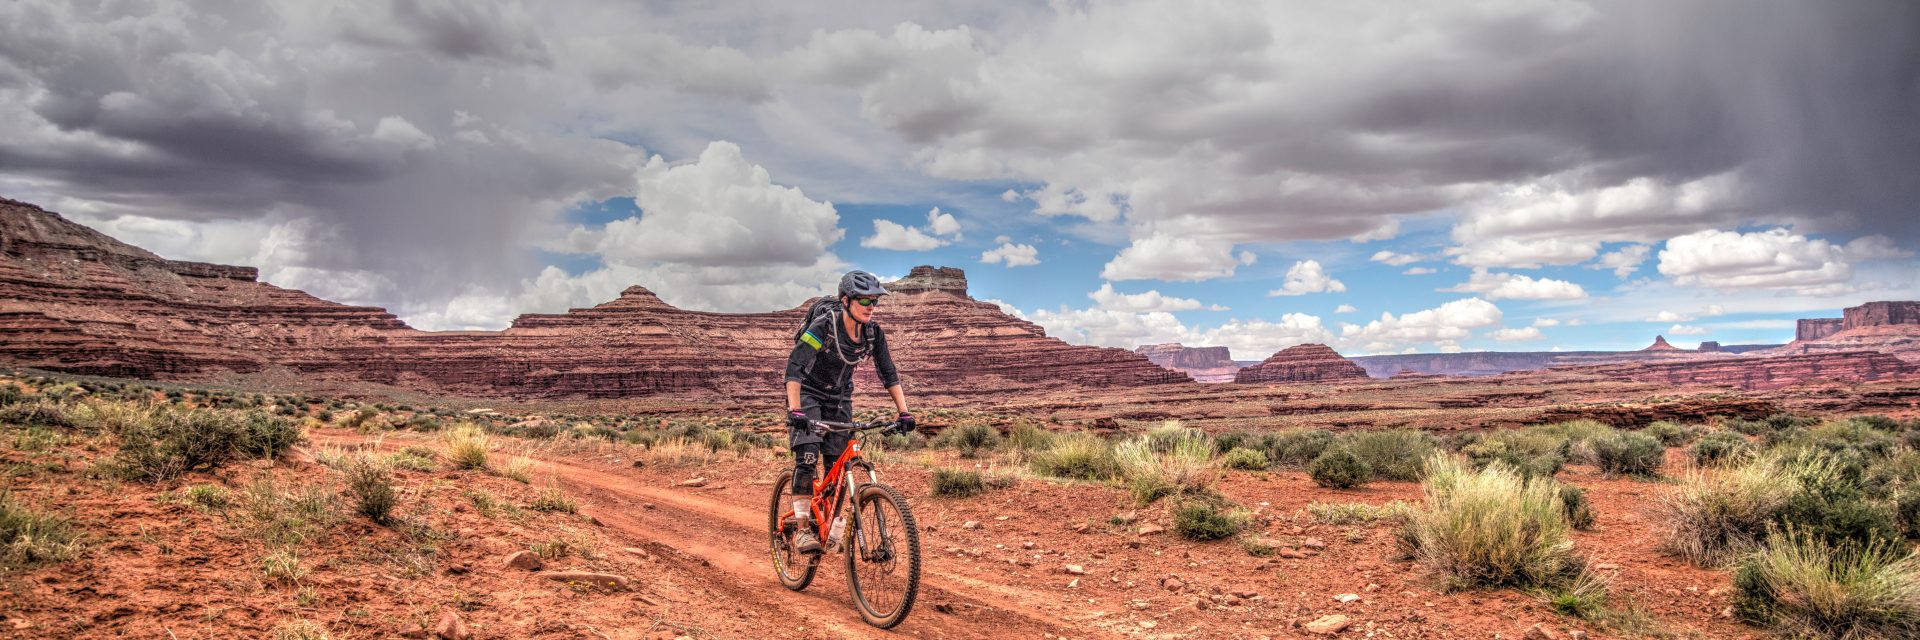 Between The Great Divide and Chicken Corners on the Needles to Moab guided mountain bike tour